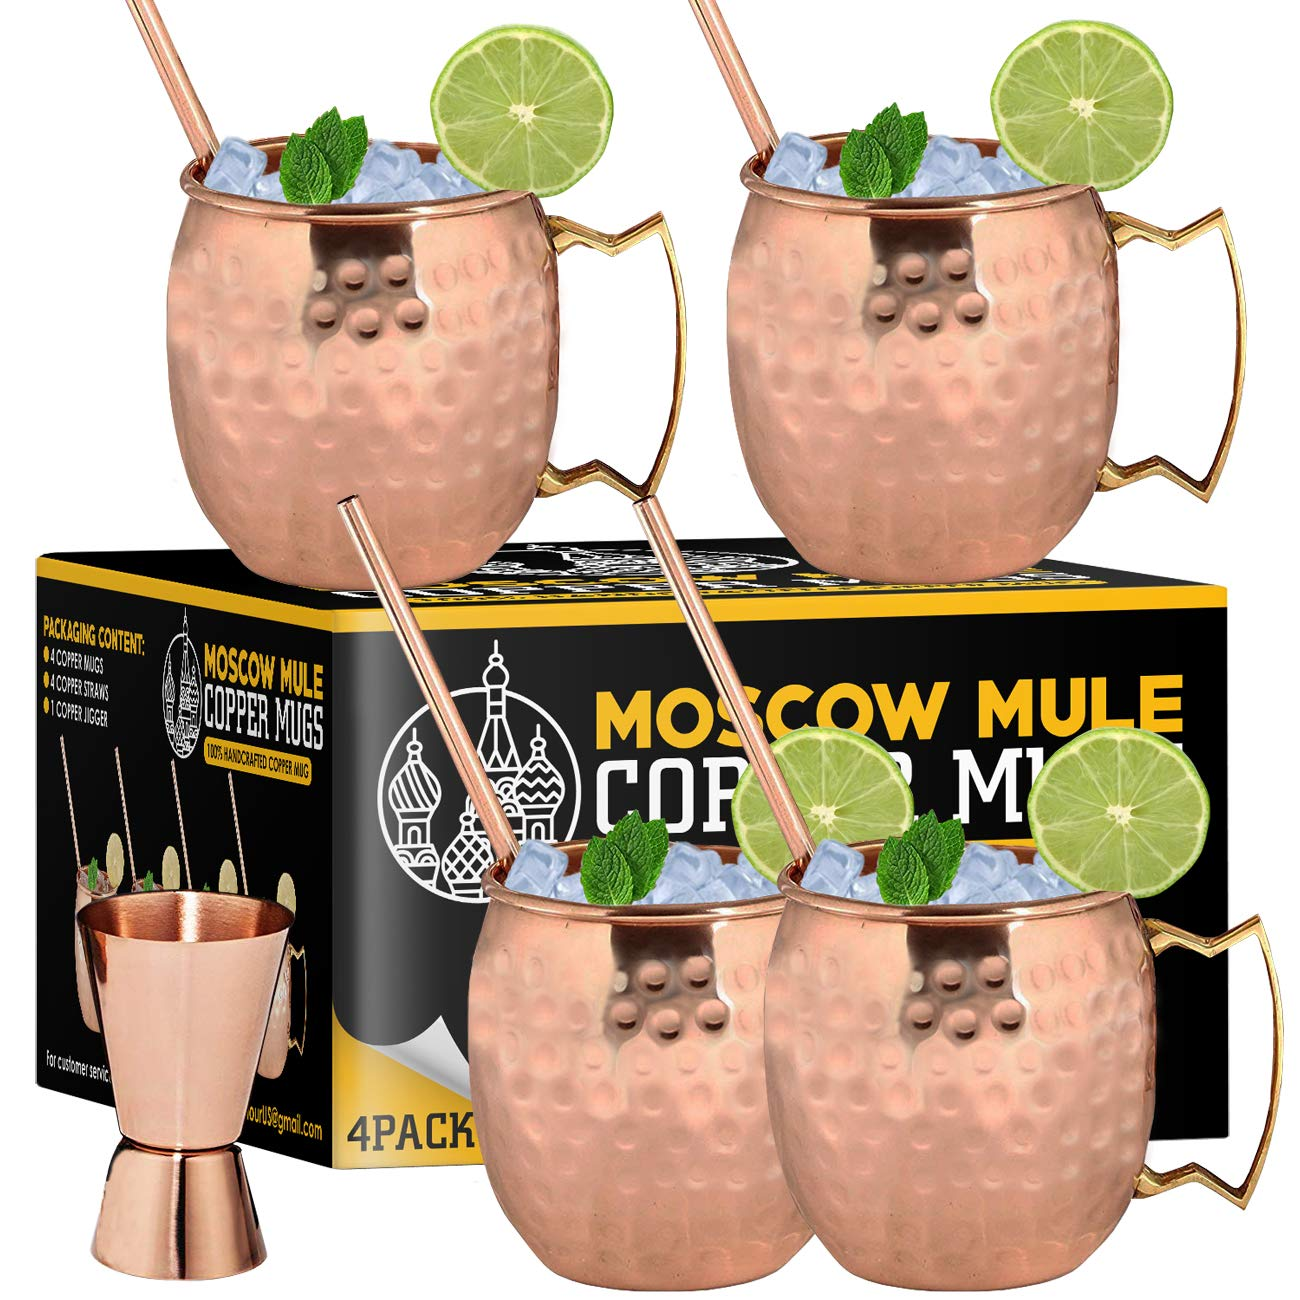 Moscow Mule Copper Mugs - Set of 4-100% Handcrafted - Food Safe Pure Solid Copper Mugs - 16 oz Gift Set with Bonus: Cocktail Copper Straws and Jigger (Copper) by Gold Armour